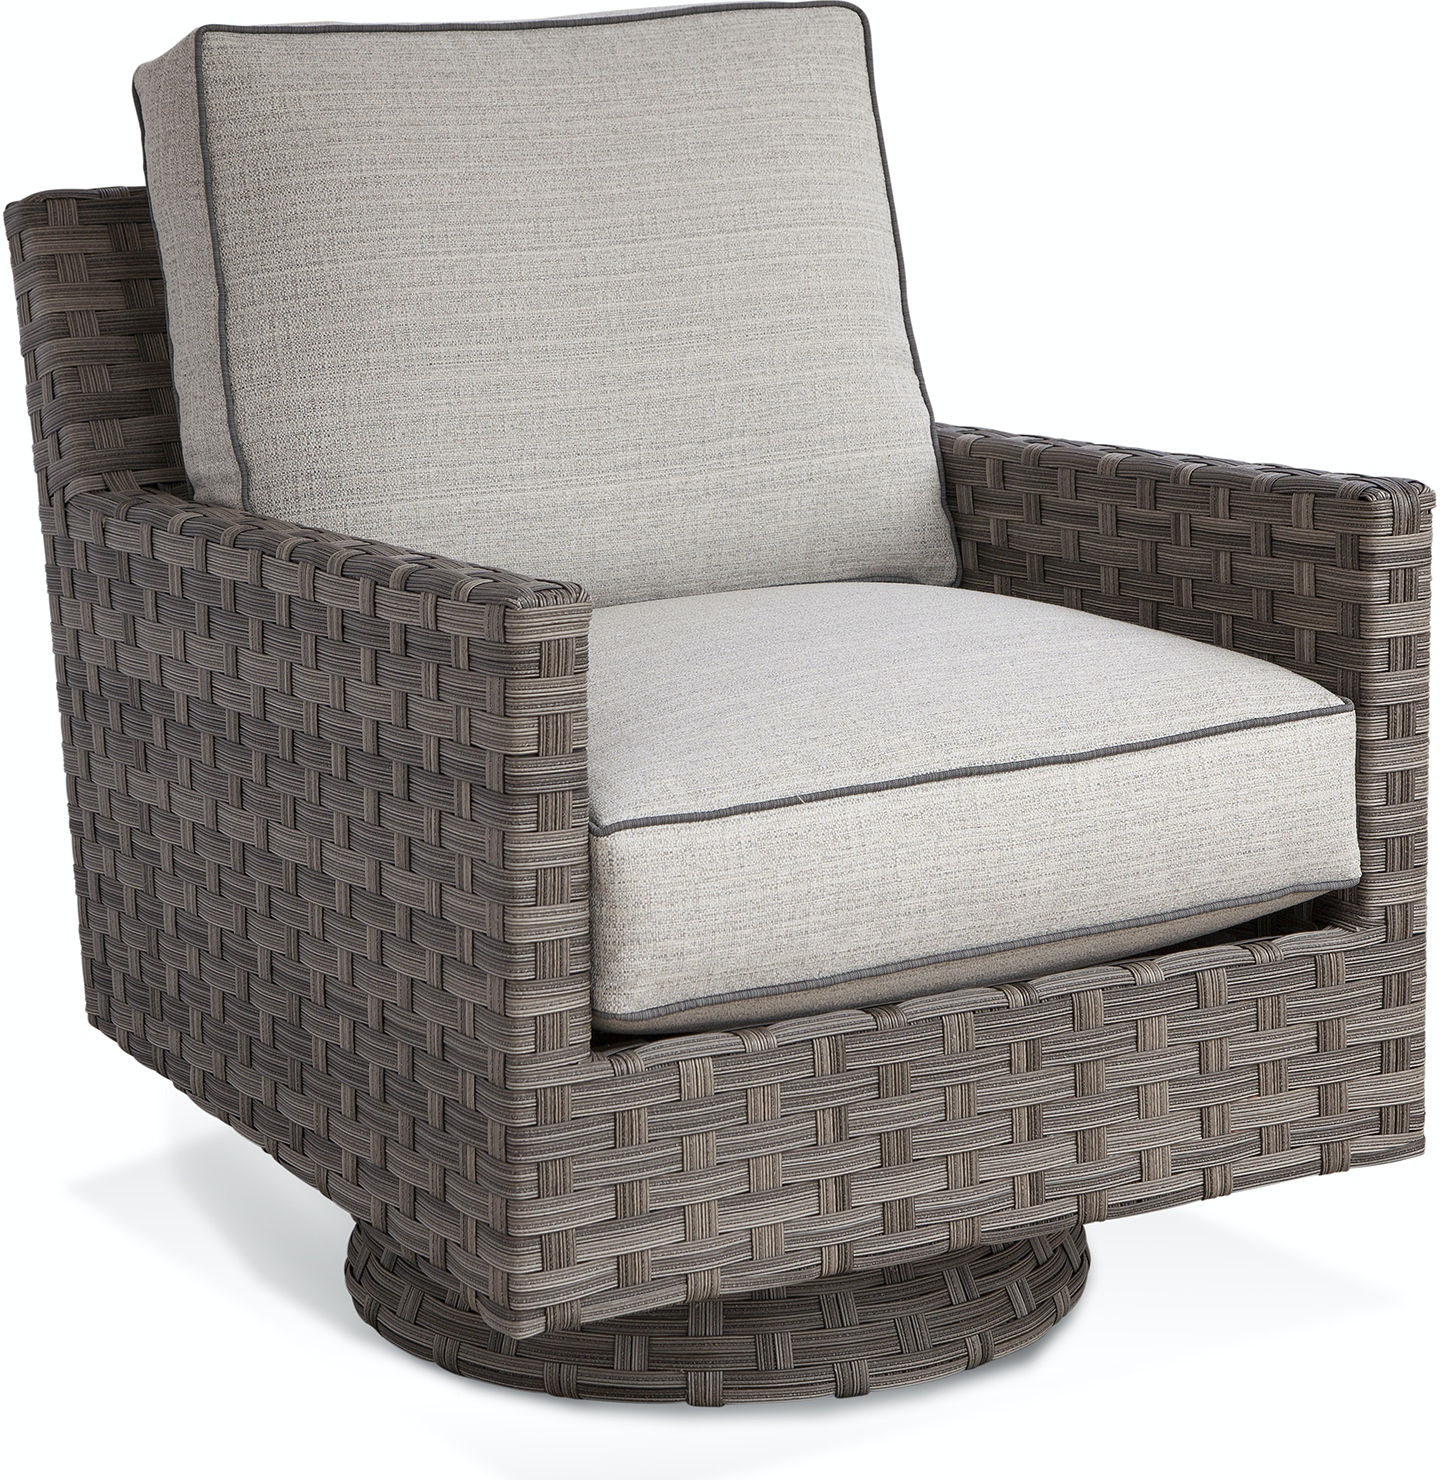 Outdoor Swivel Chair 414-005